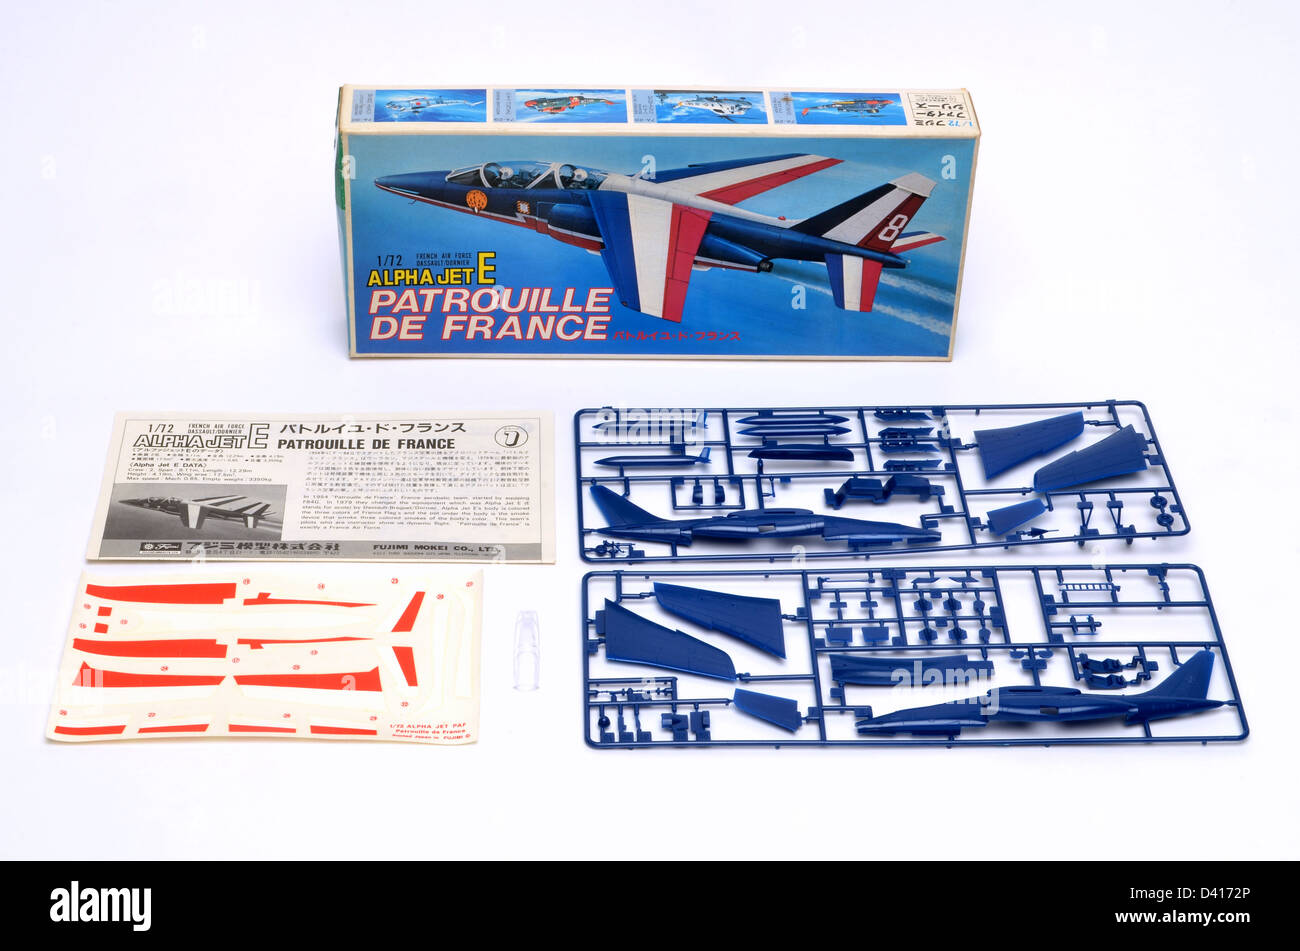 Fujimi 1/72 scale Alpha Jet model aircraft construction kit box and parts on white background - Stock Image